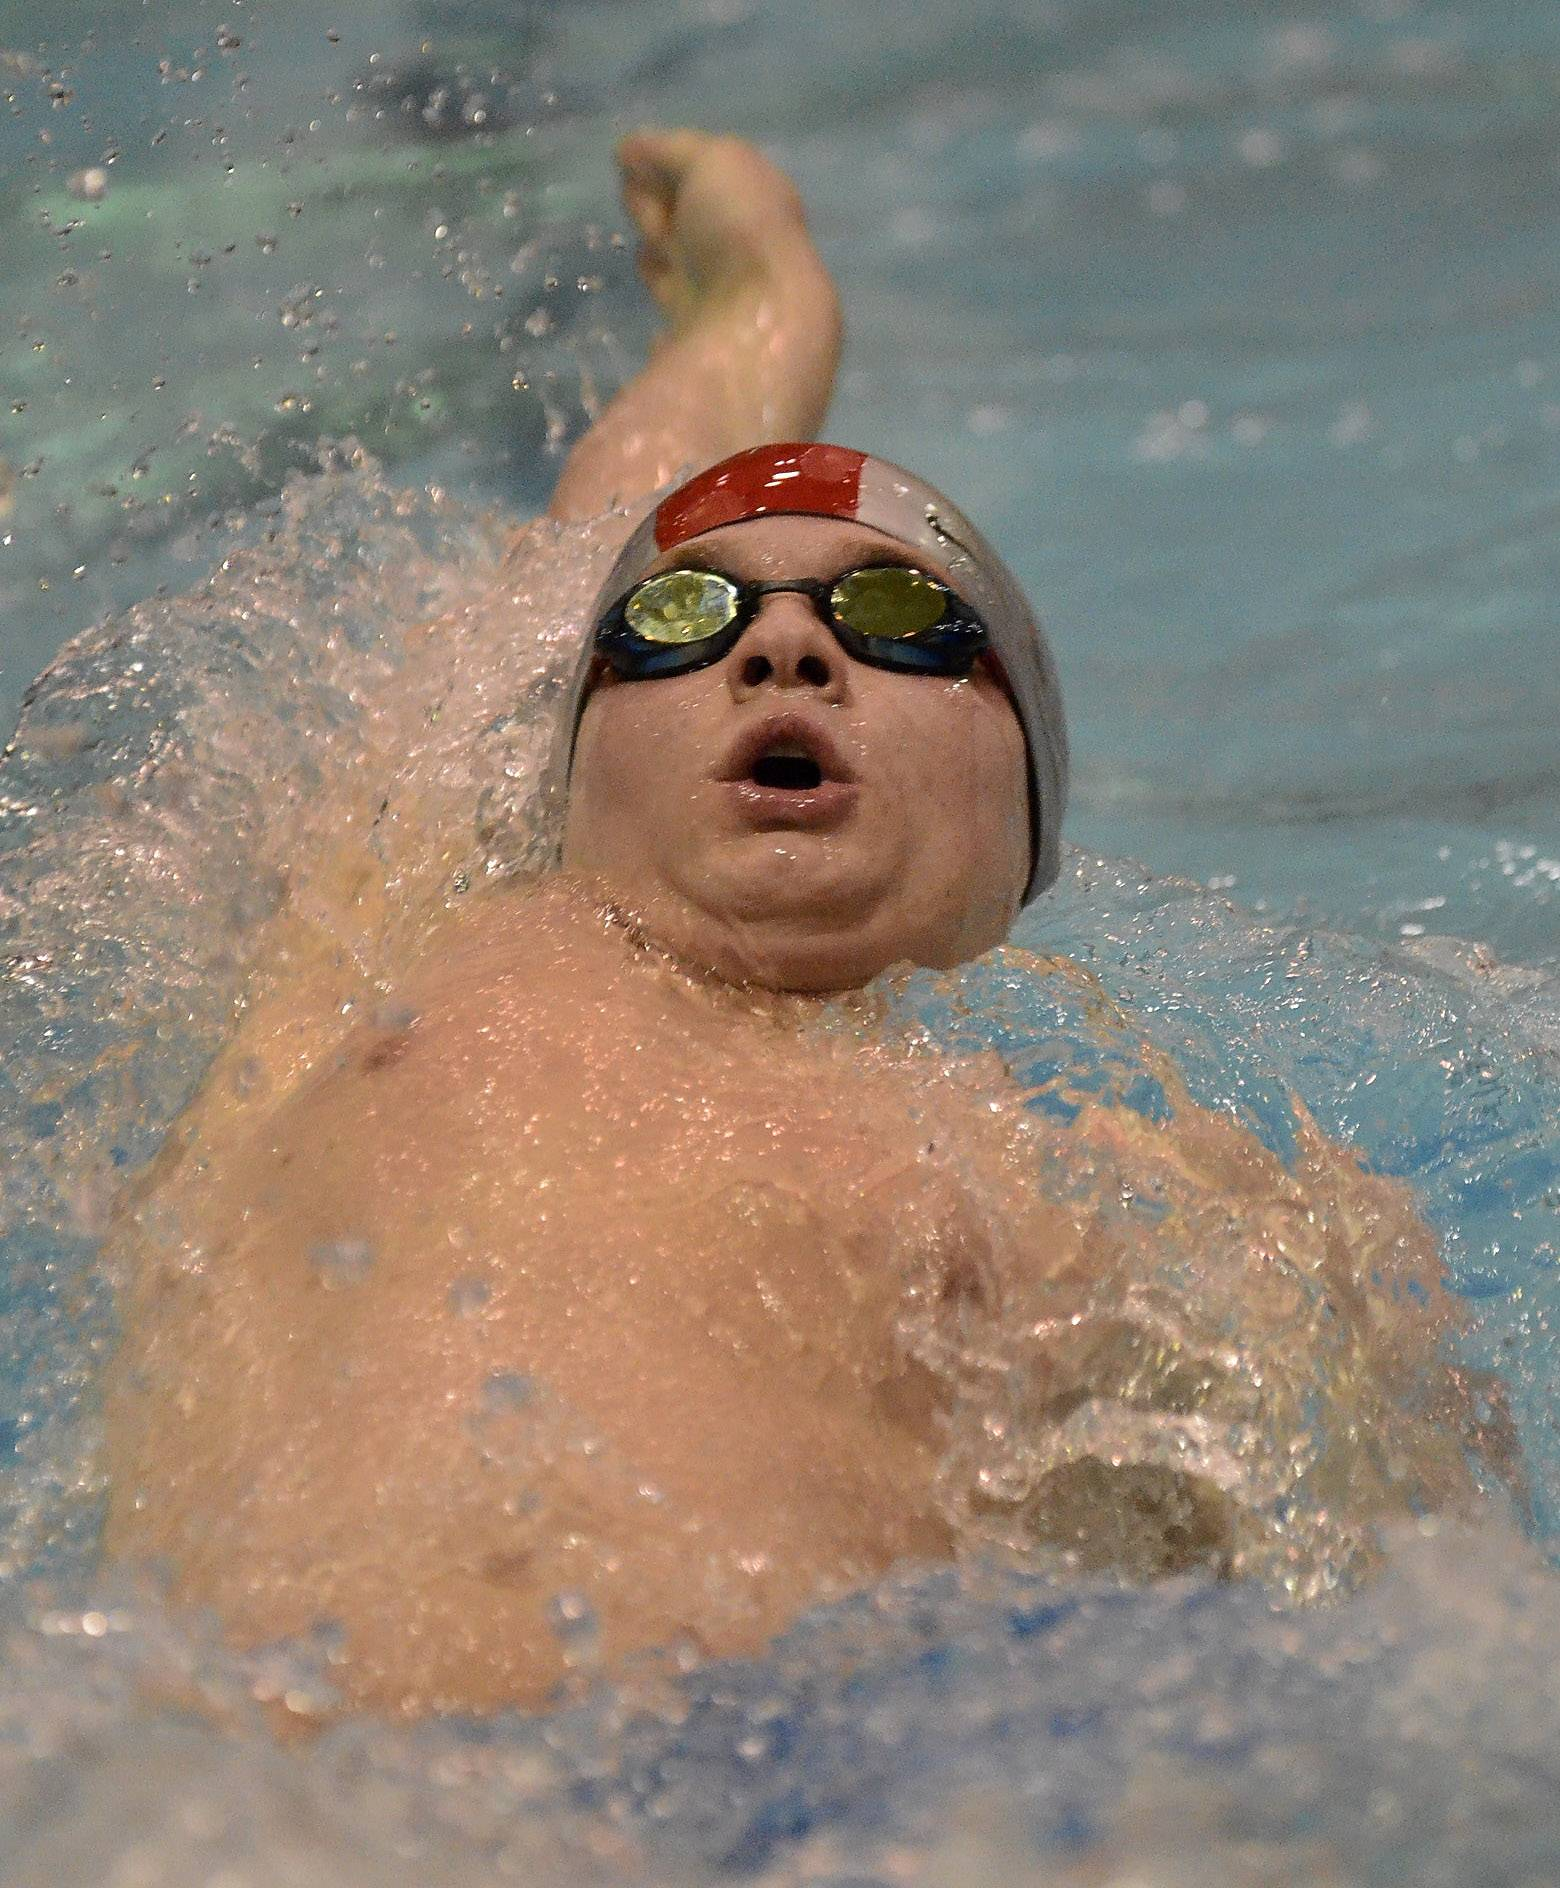 Jake Noel of Wheeling competes.